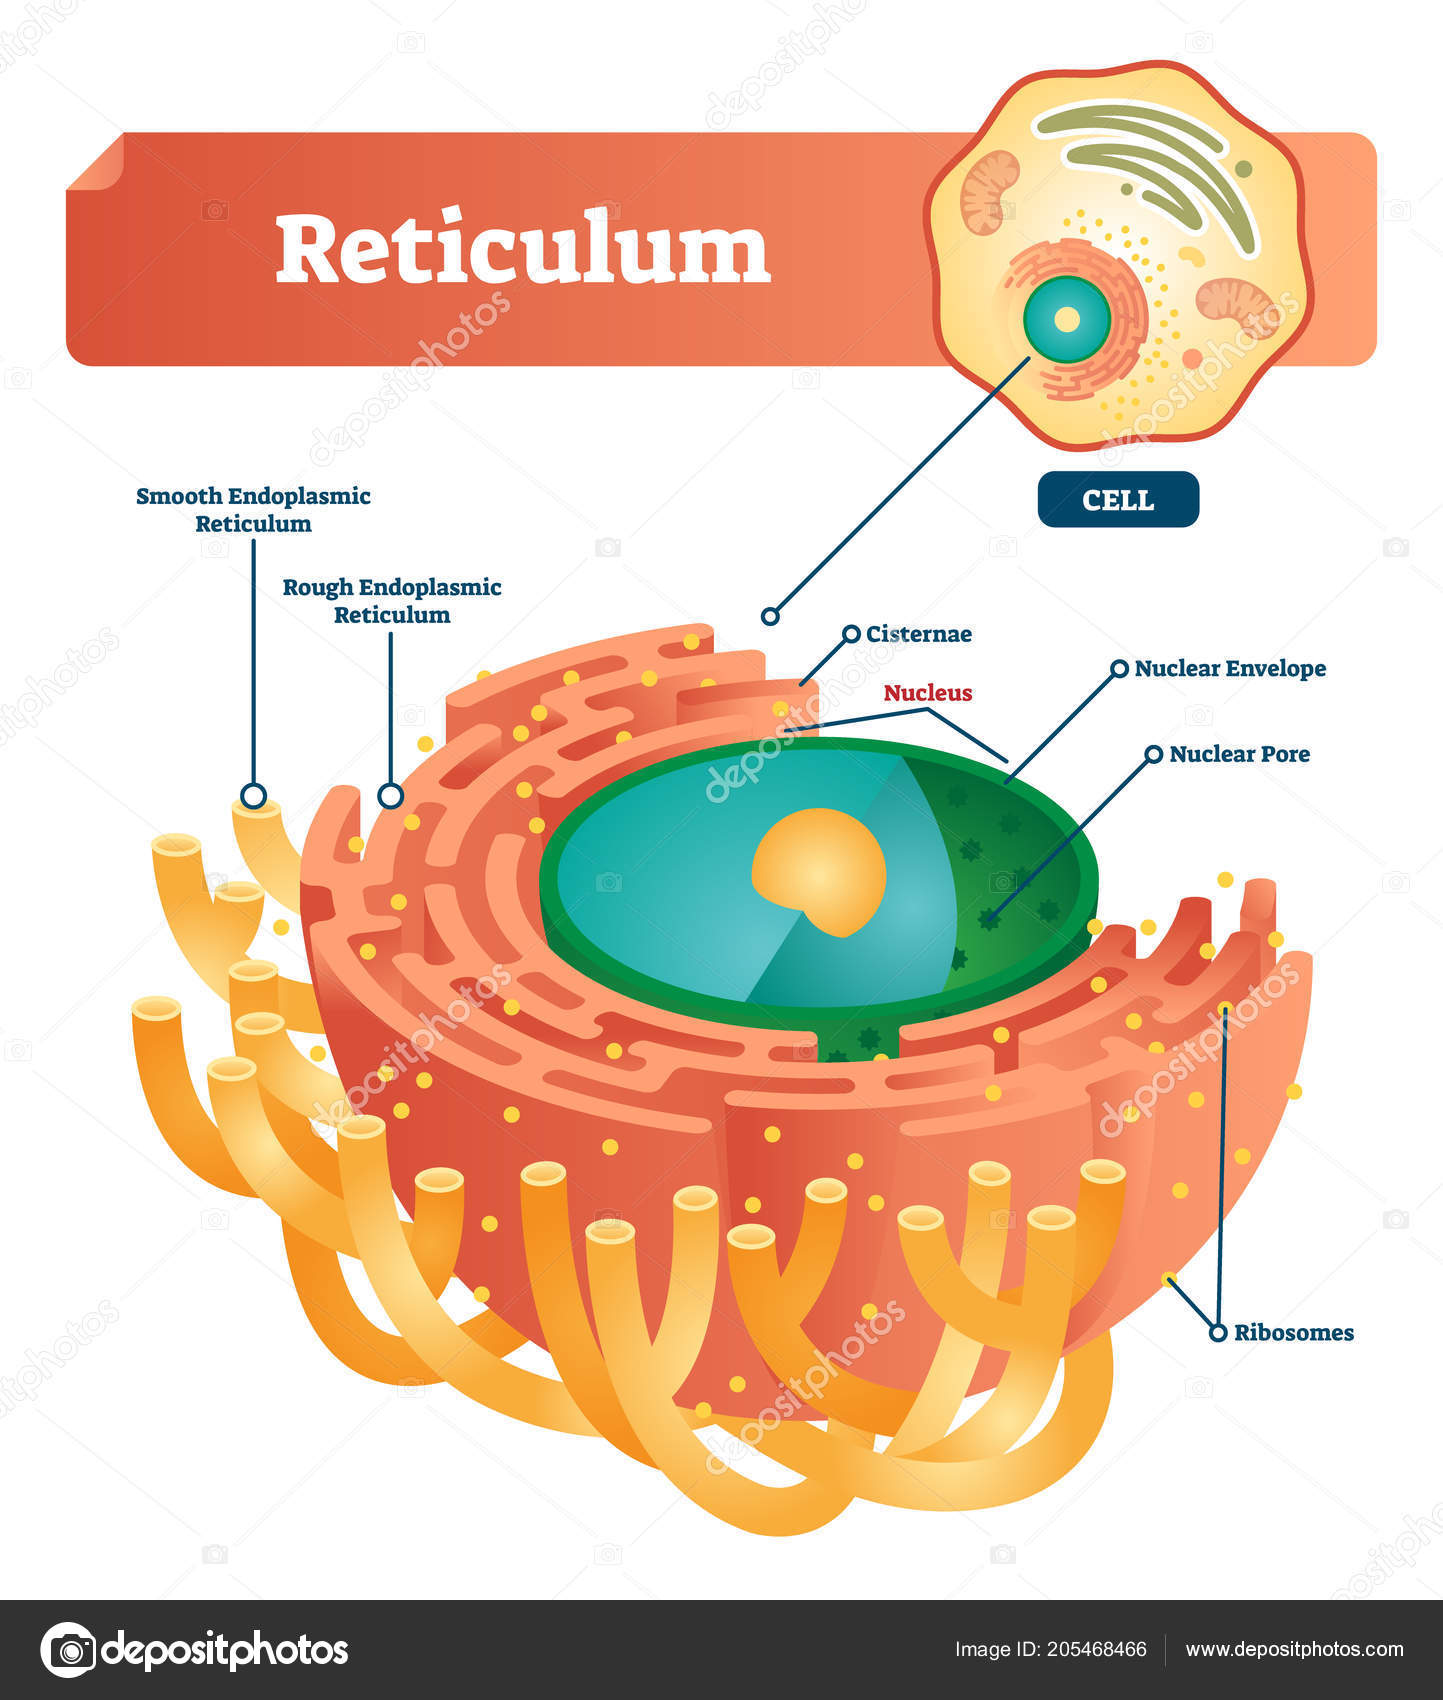 Reticulum labeled vector illustration scheme anatomical diagram anatomical diagram with smooth and rough endoplasmic reticulum closeup with cisternae nucleus ribosomes nuclear envelope pore and anatomical structure ccuart Image collections